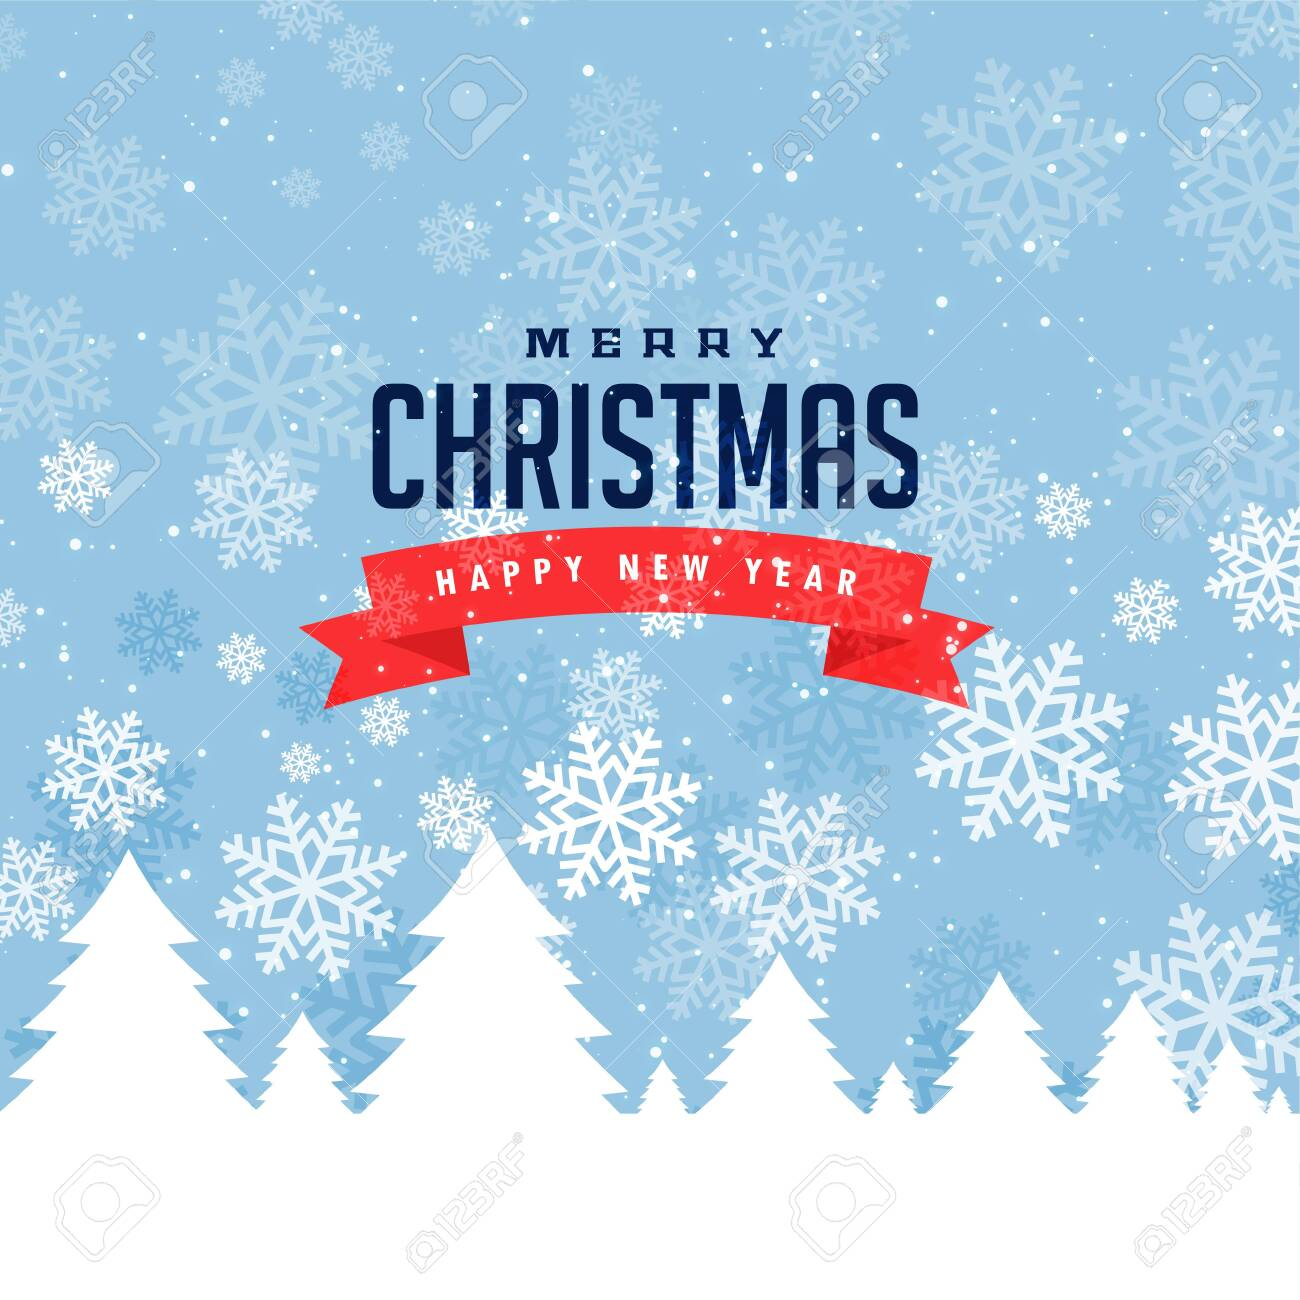 festival greeting for merry christmas and winter season - 133796924